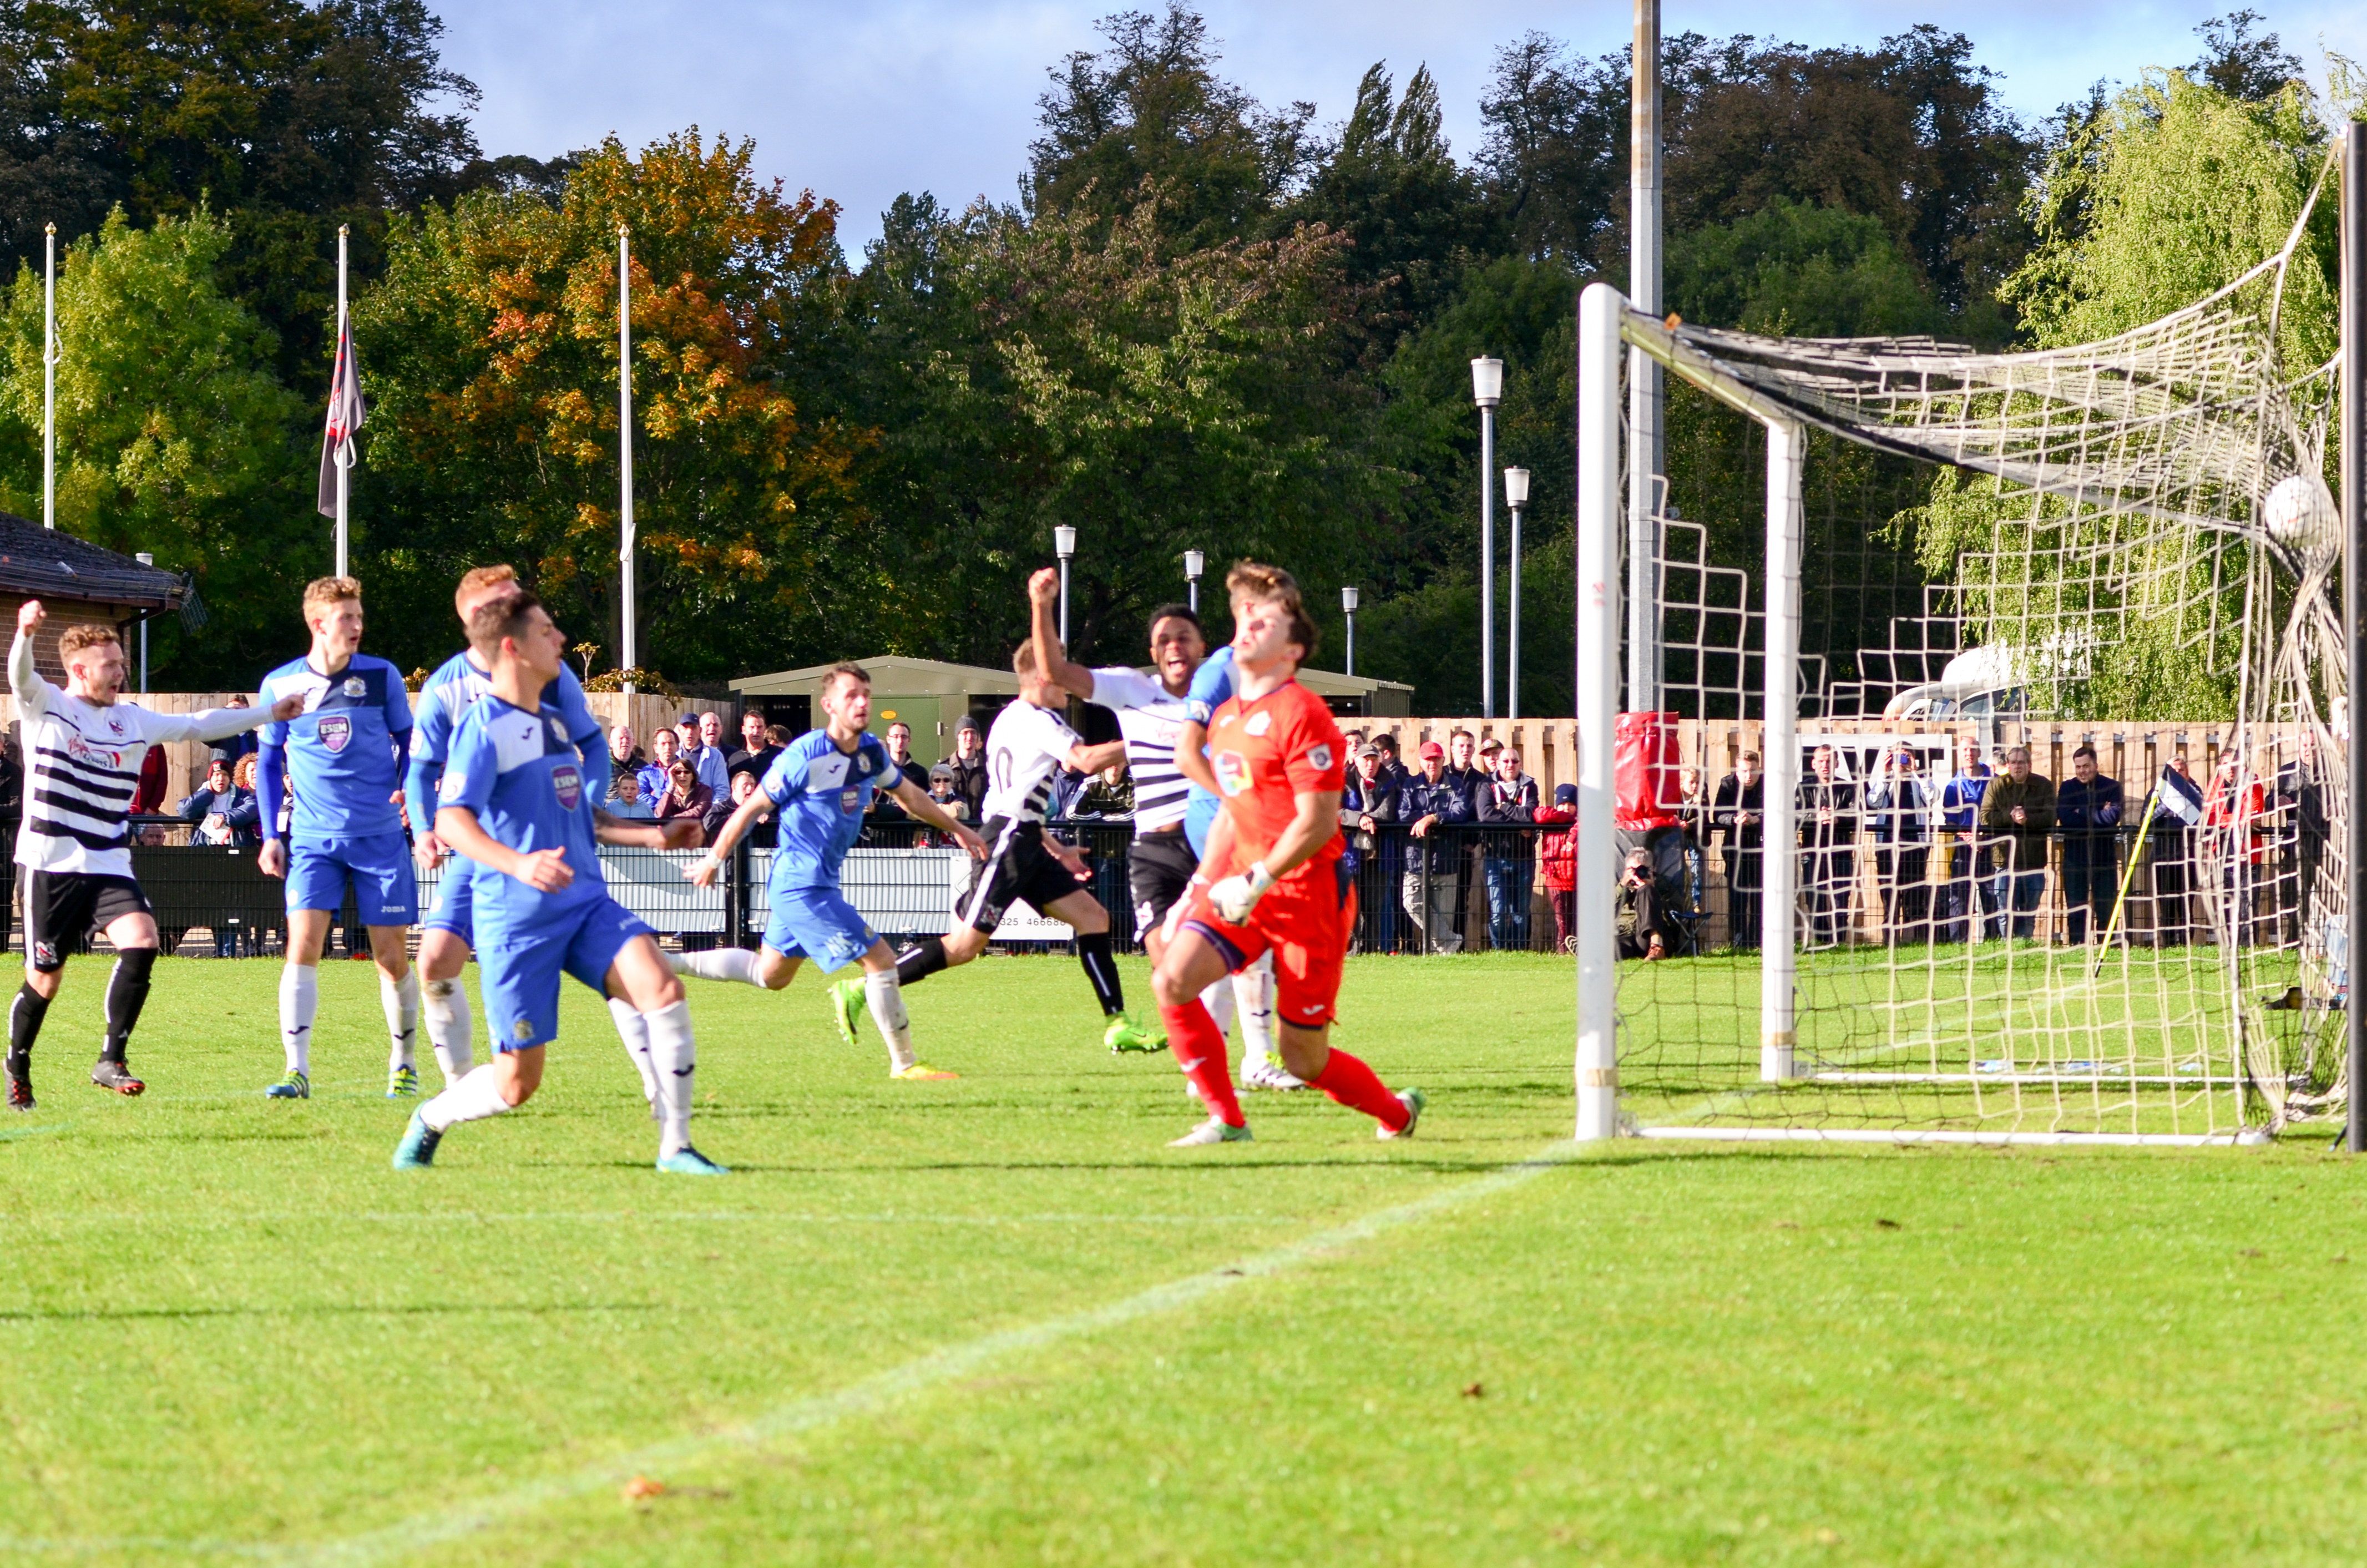 Nick's Pics 2 - more action from our game against ...